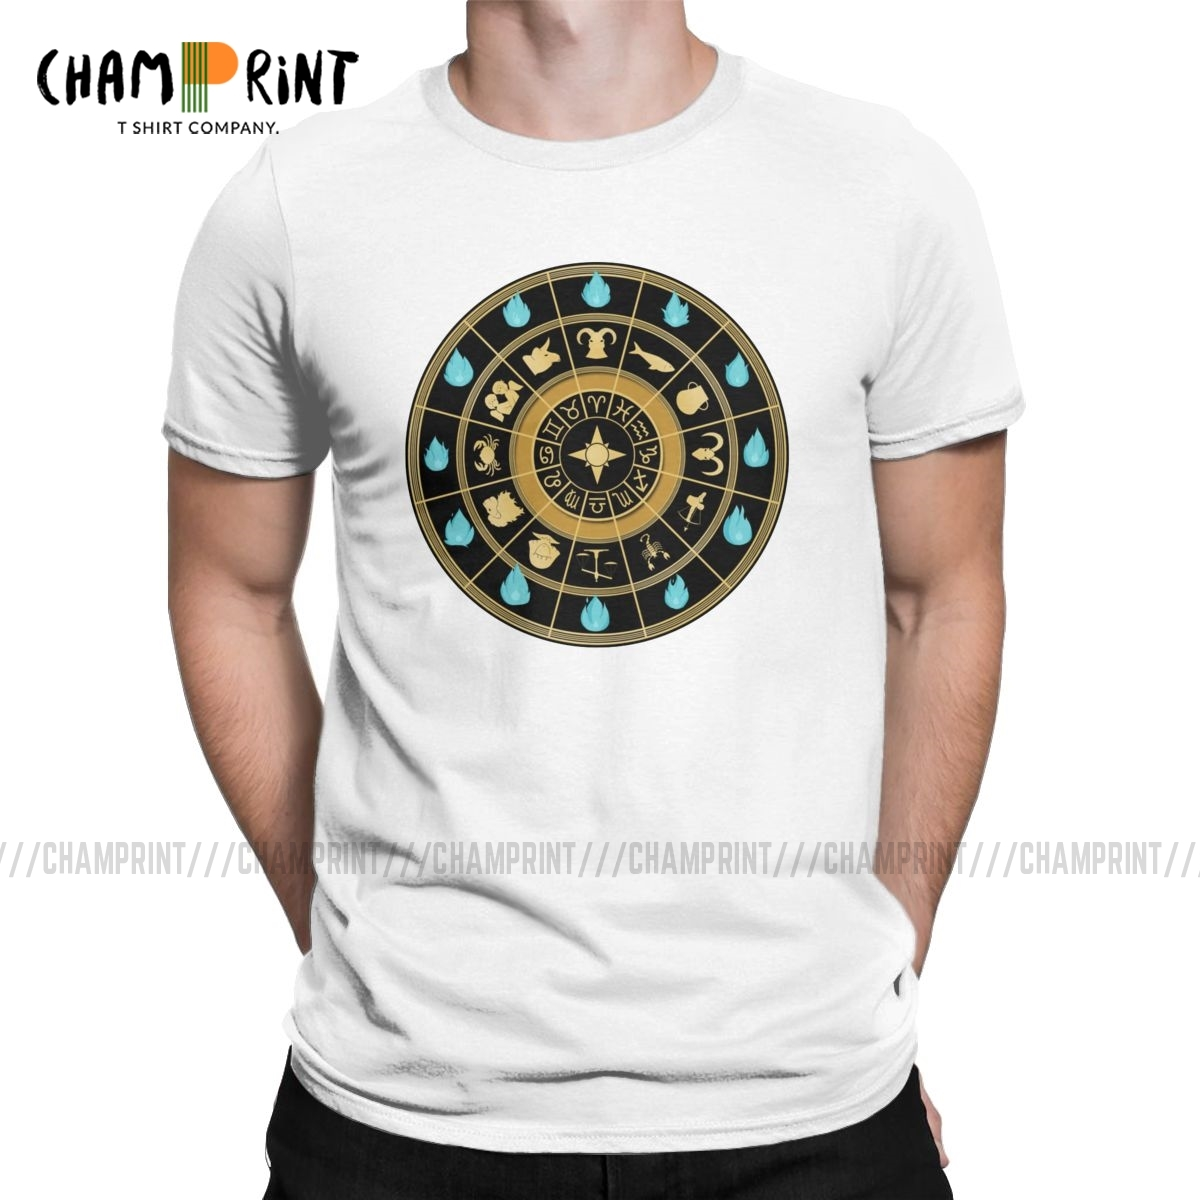 Saint Seiya Clock T Shirts For Men Cotton Vintage T-Shirts Crew Neck Knights Of The Zodiac Anime Tees Short Sleeve Tops Printed